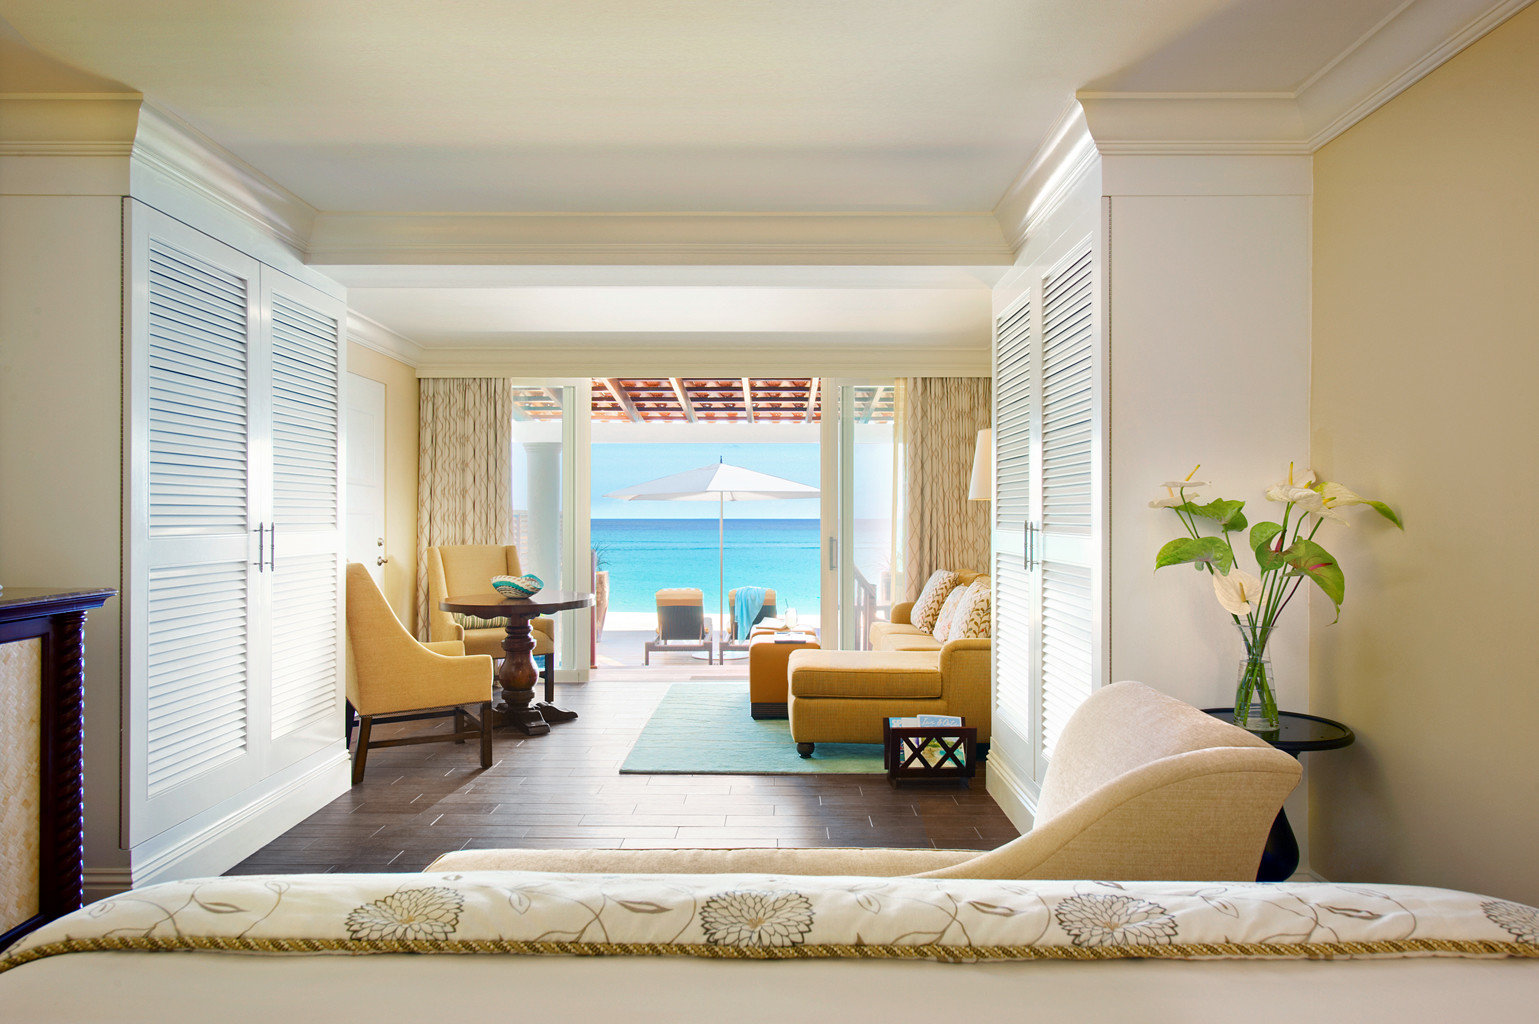 Balcony Bedroom Ocean Scenic views Suite sofa property living room home condominium